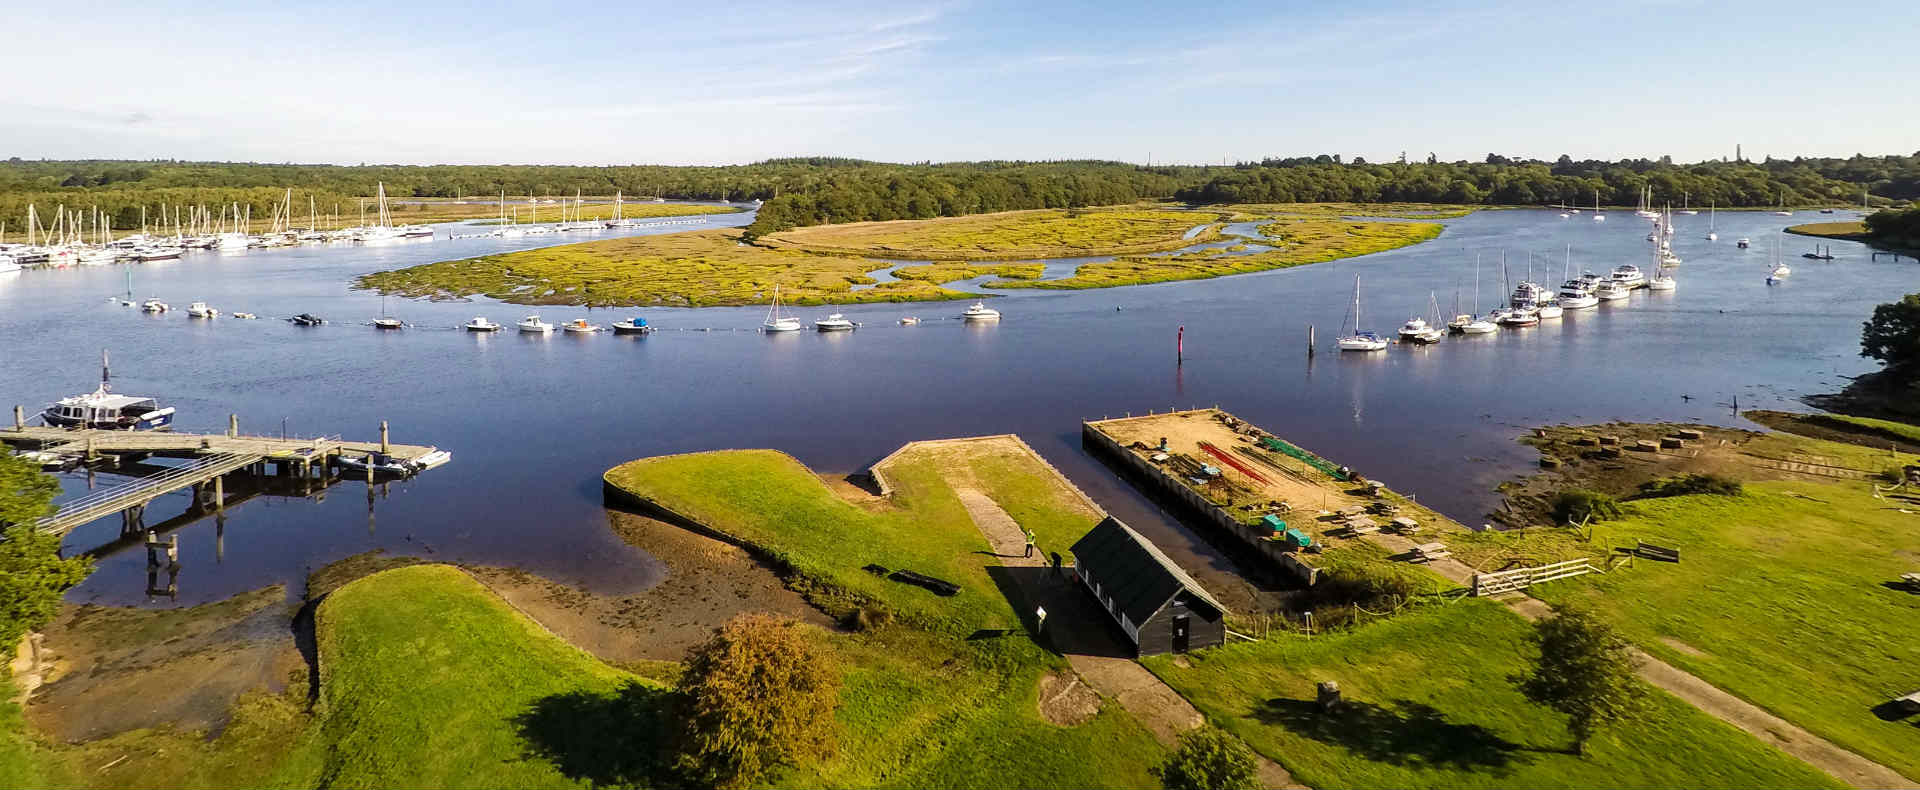 Cruise The Beaulieu River With Our Latest Break | Montagu Arms Hotel1